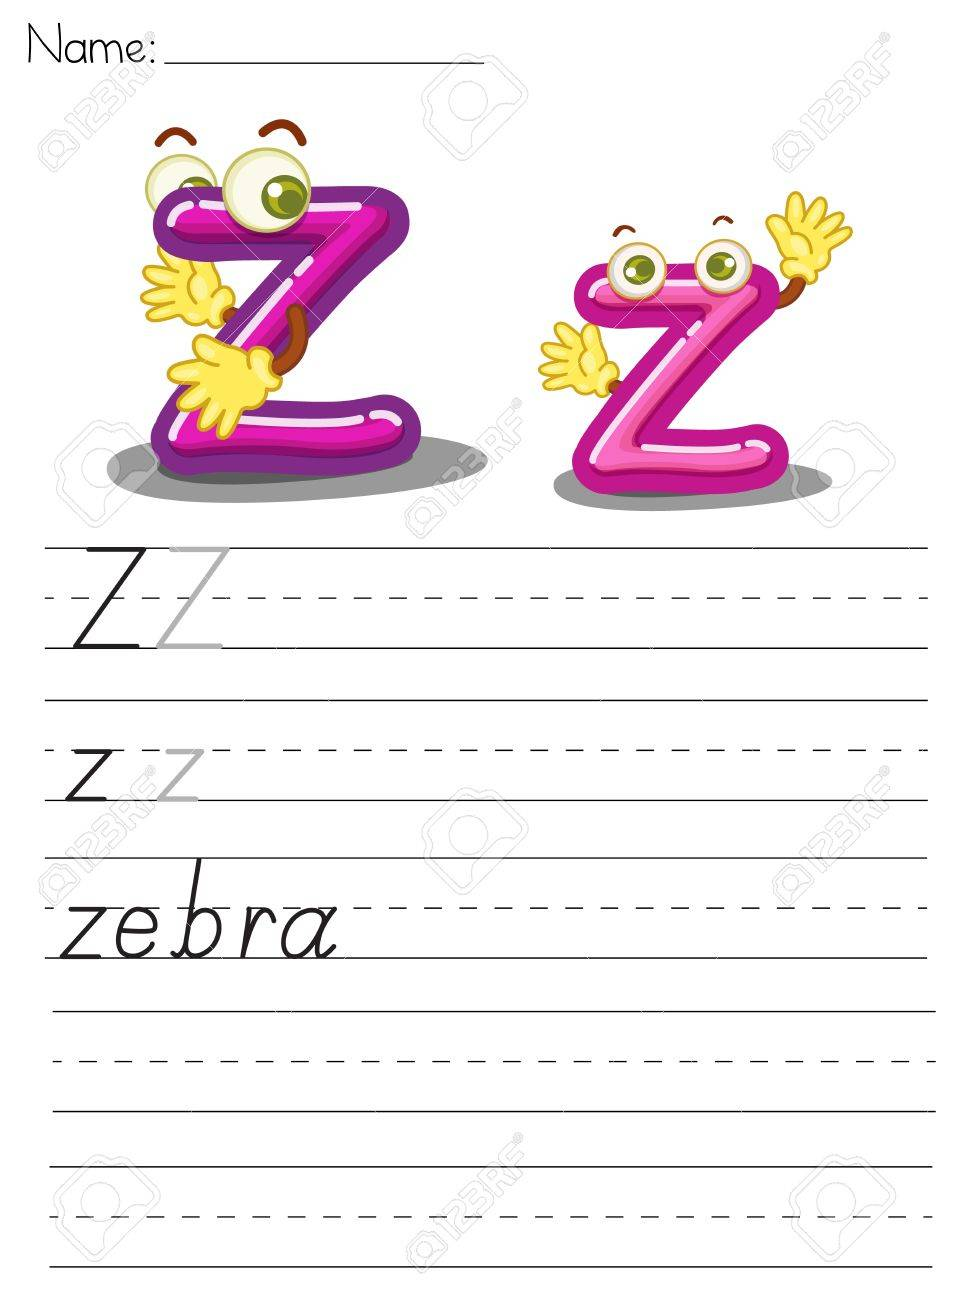 Illustrated Alphabet Worksheet Of The Letter Z Royalty Free Cliparts ...